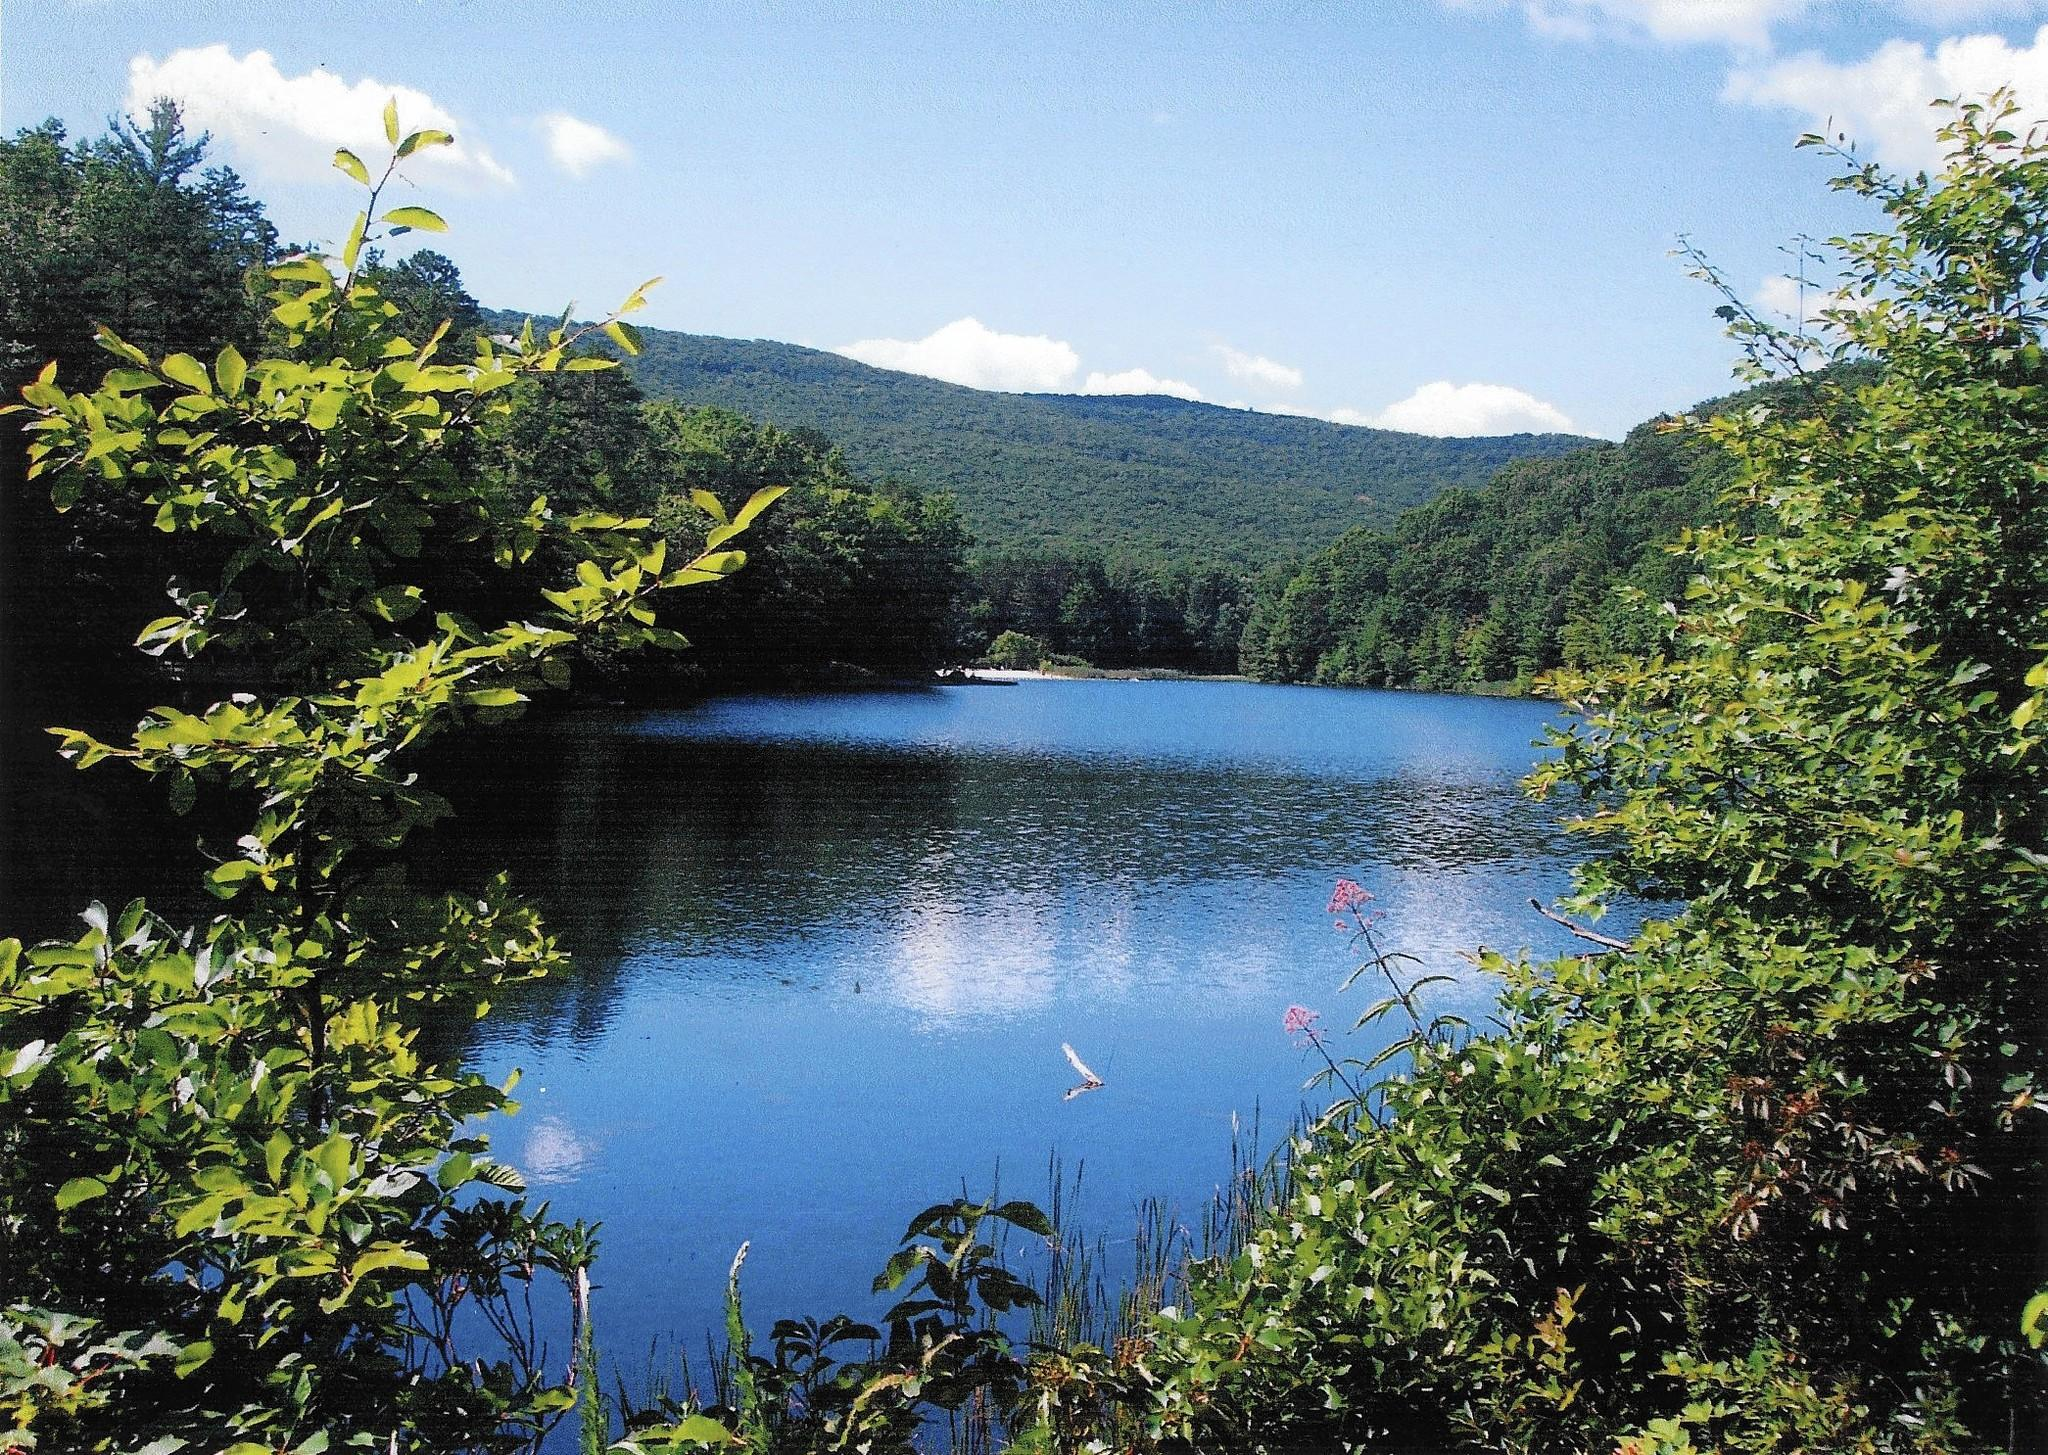 In the past, the U.S. Forest Service has made it a top priority to preserve the purity of the water in George Washington National Forest, but the land also has vast untapped deposits of natural gas.